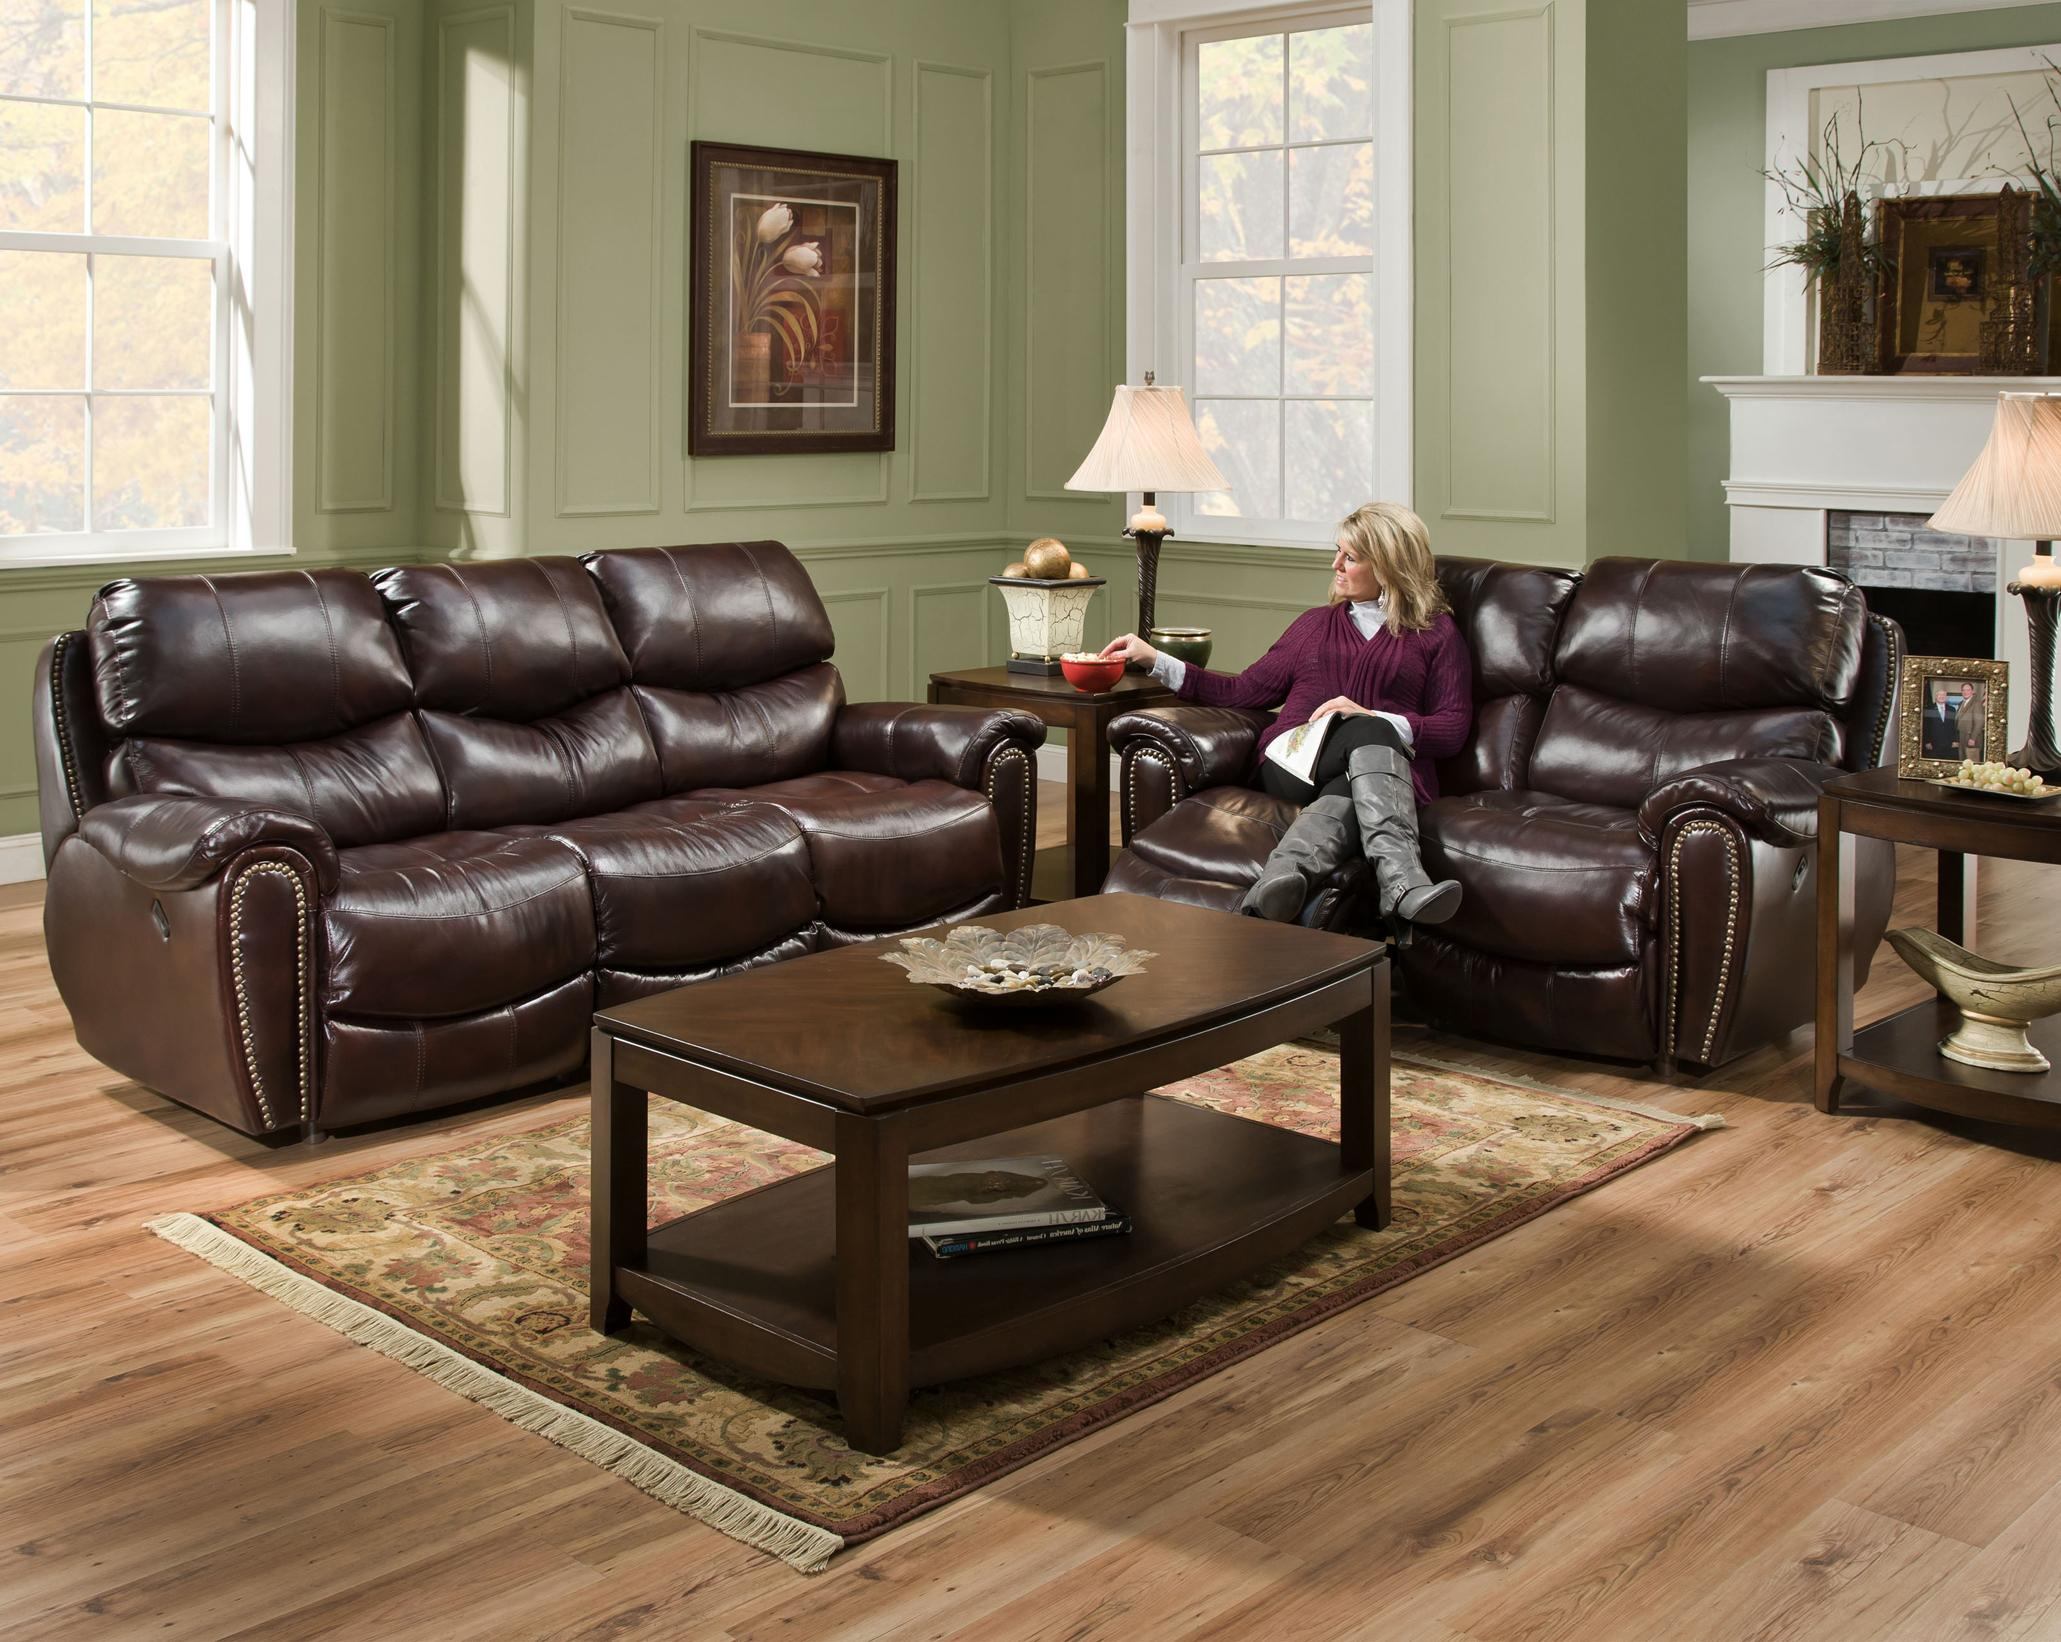 Franklin Richmond Reclining Sofa With Nail Head Trim Miskelly Furniture Reclining Sofa